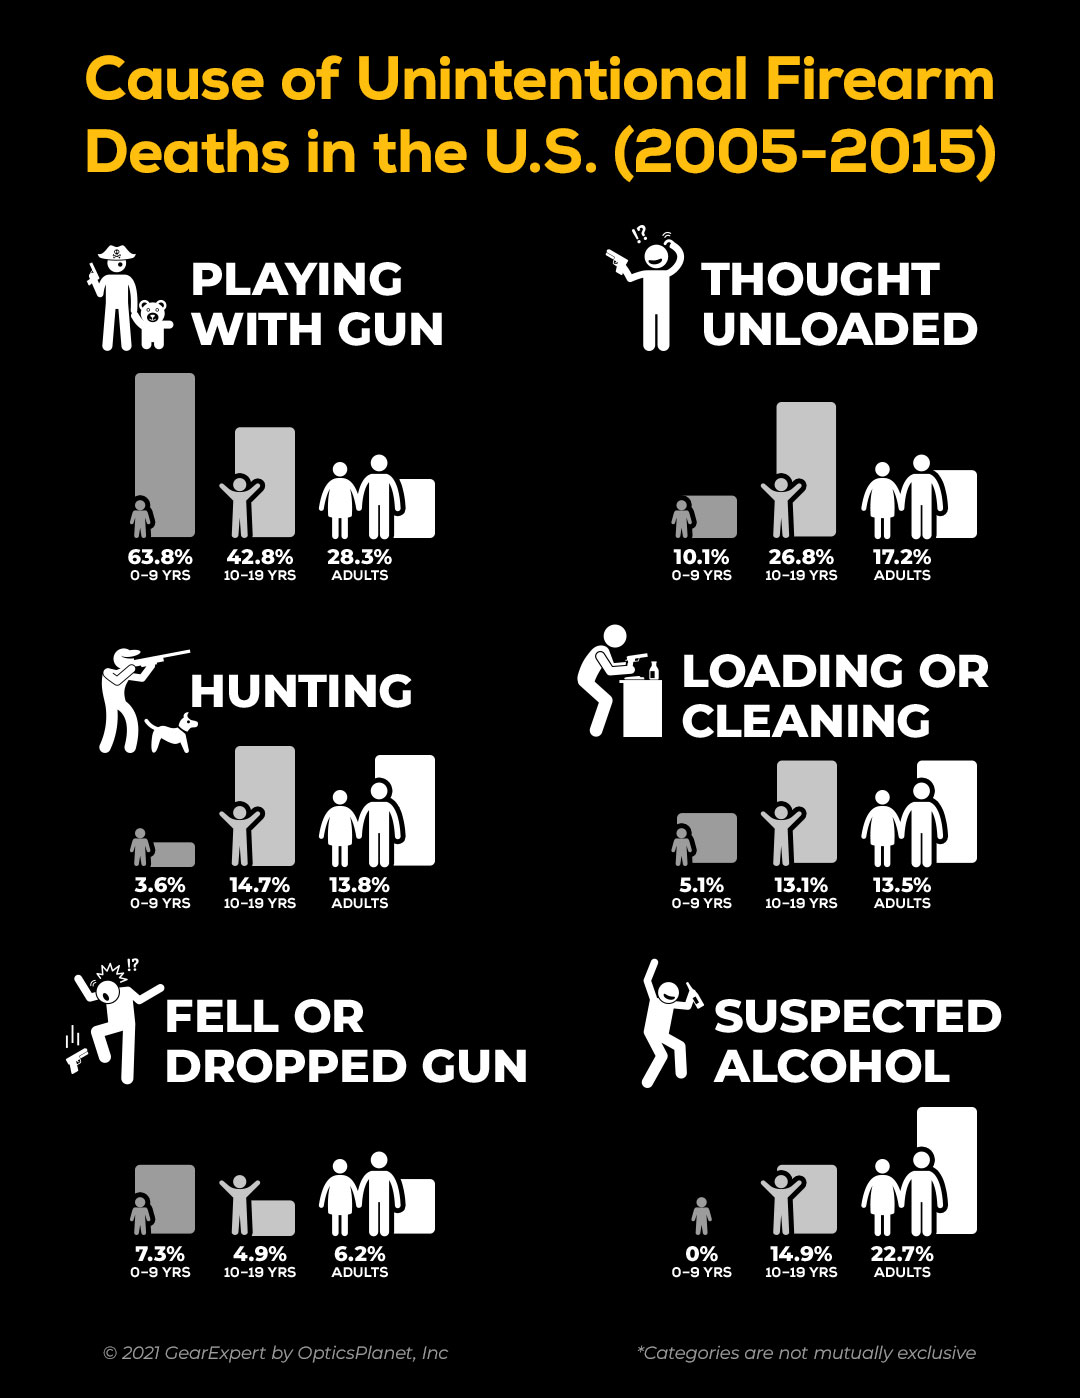 statistical graphic about accidental firearm deaths